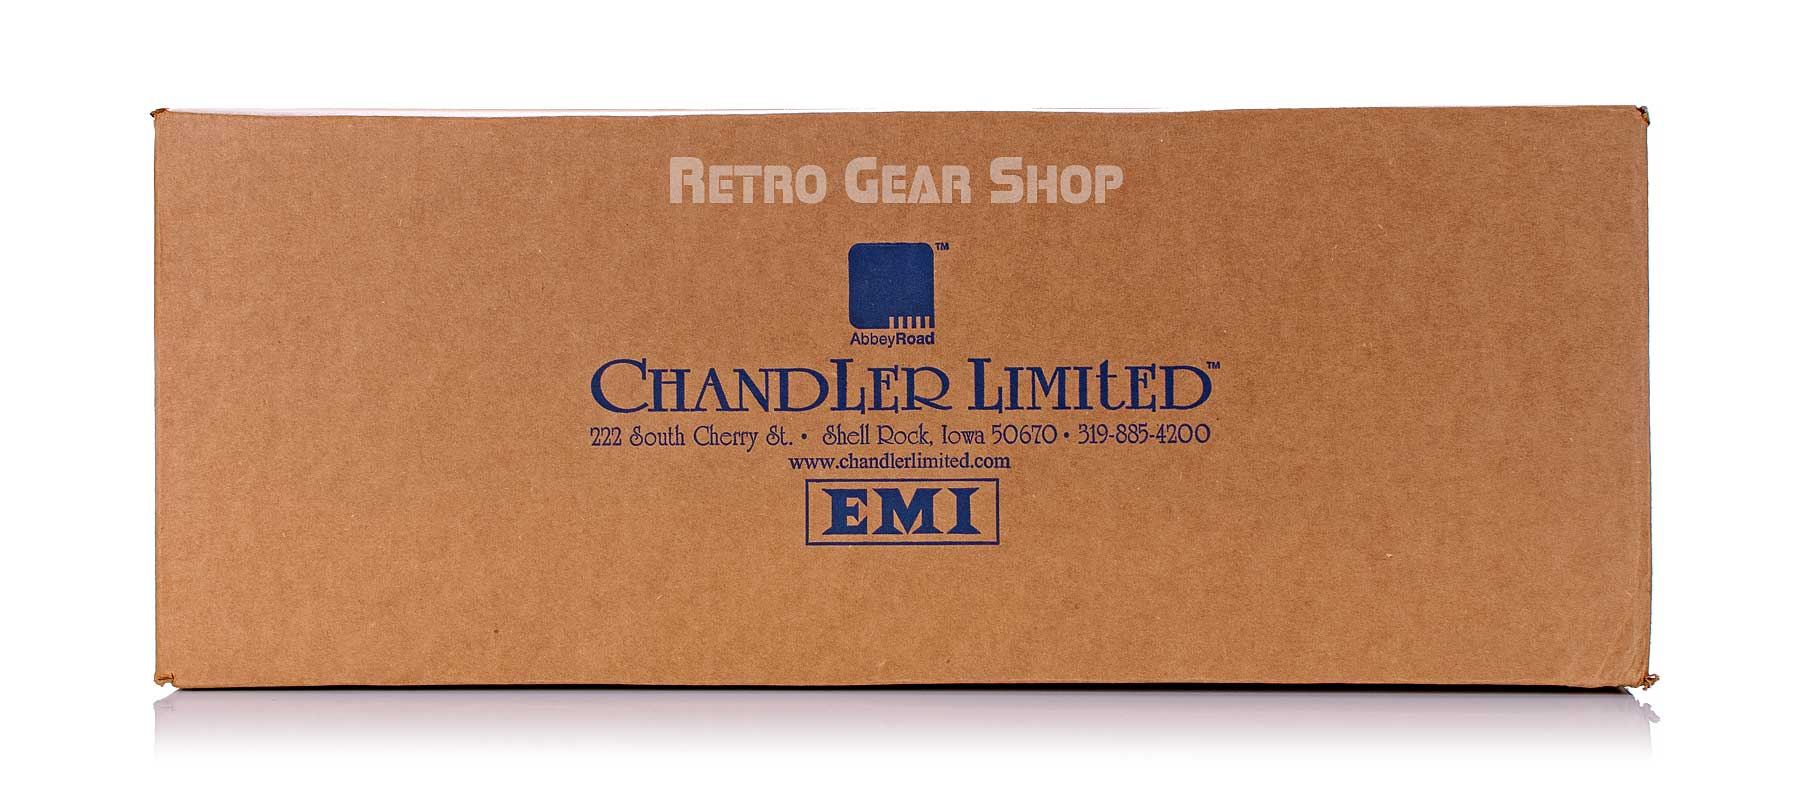 Chandler Limited RS124 Pair Box